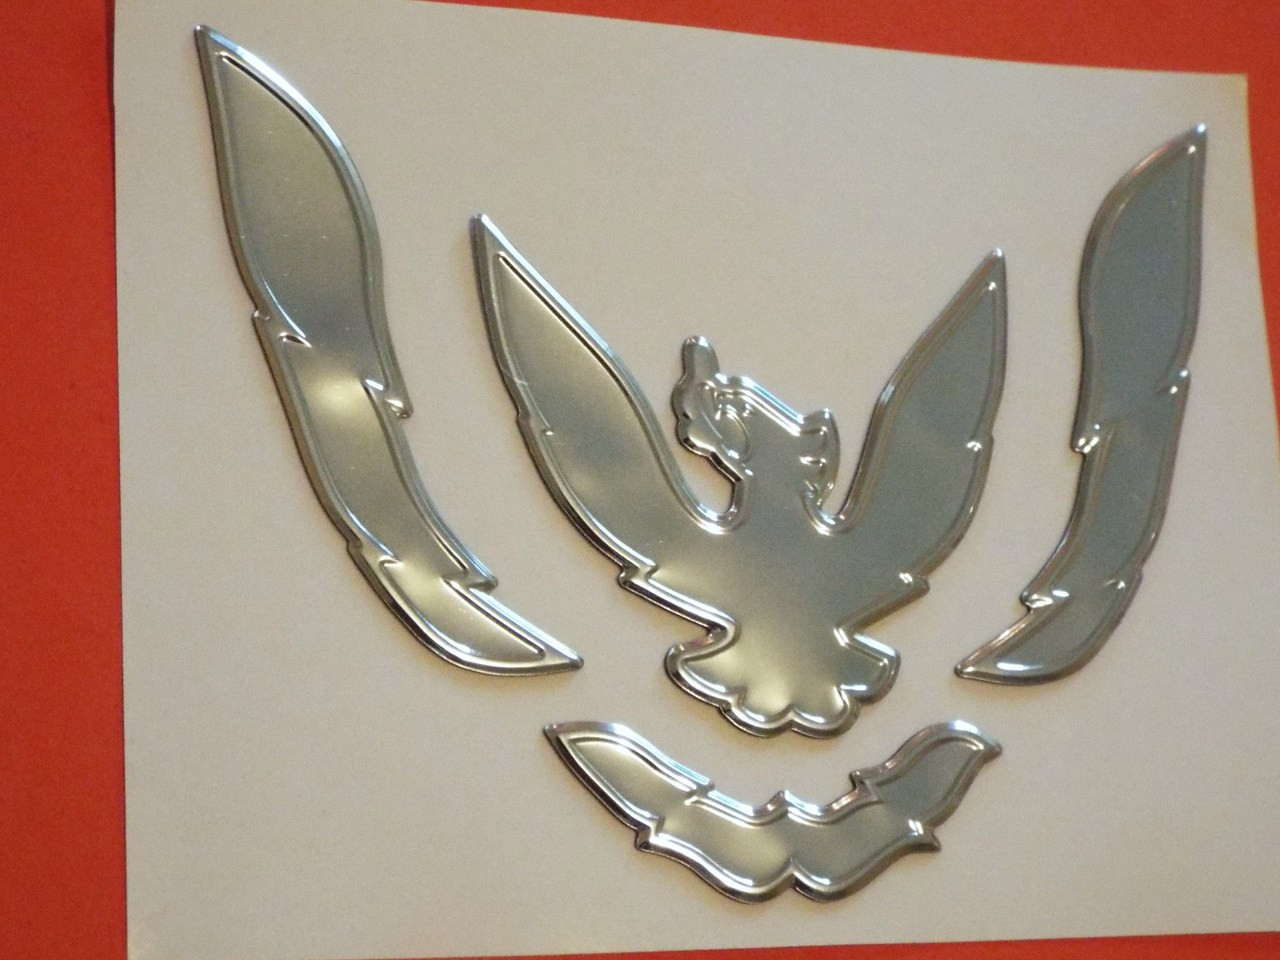 New 1993-1994-1995-1996-1997 Pontiac Firebird Bumper Emblem-Badge-Chrome New 1993-1994-1995-1996-1997  Pontiac Trans Am Bumper Emblem-Badge-Chrome New 1993-1994-1995-1996-1997  Pontiac Trans Am Nose Emblem-Badge-Chrome New 1993-1994-1995-1996-1997 Pontiac Firebird Nose Emblem-Badge-Chrome